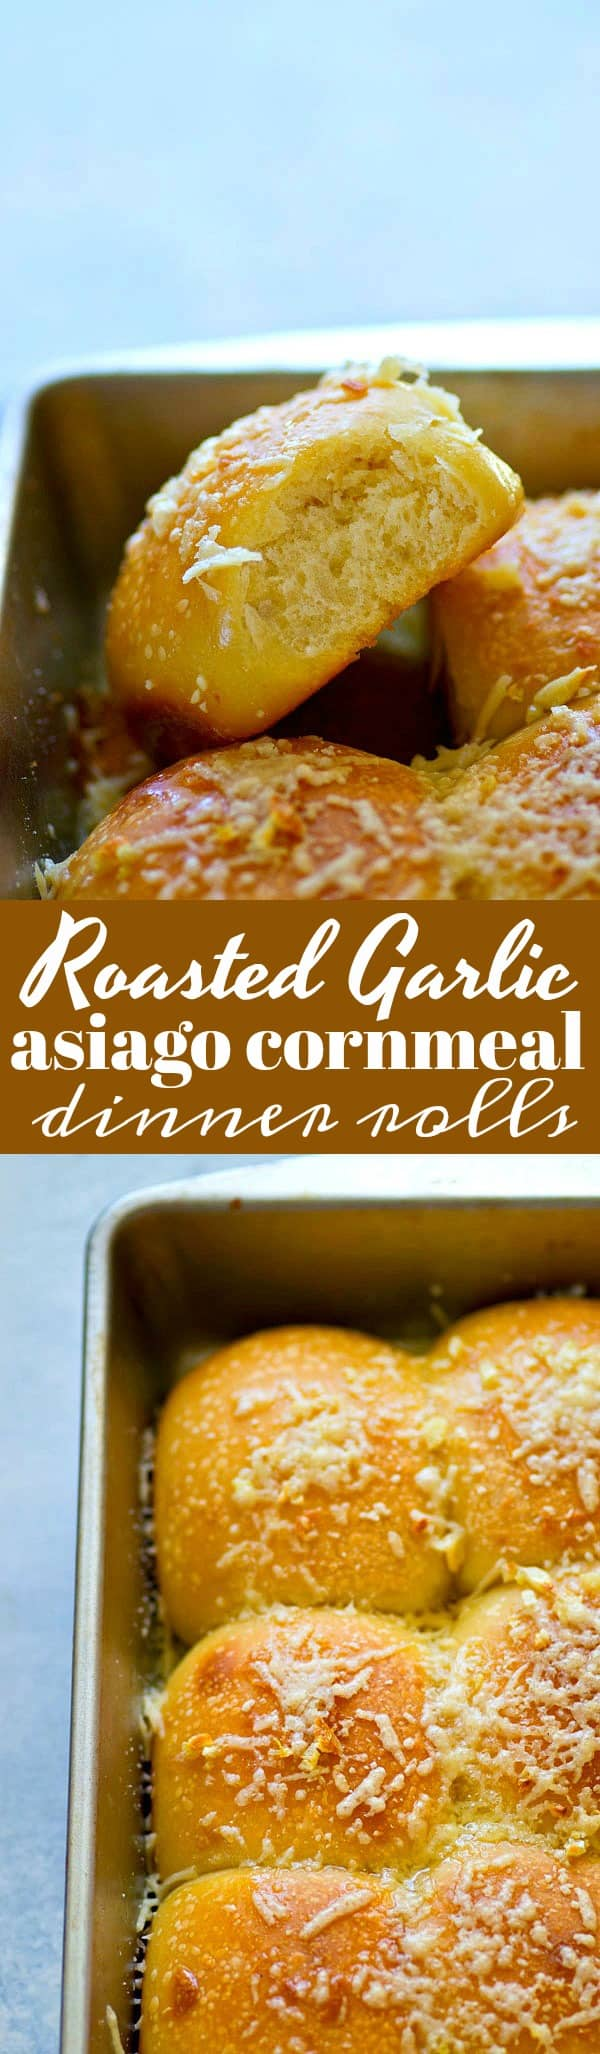 Sharp asiago cheese and flavorful roasted garlic are the perfect duo in these SUPER soft asiago cornmeal dinner rolls! Fill your holiday bread baskets with these winners.